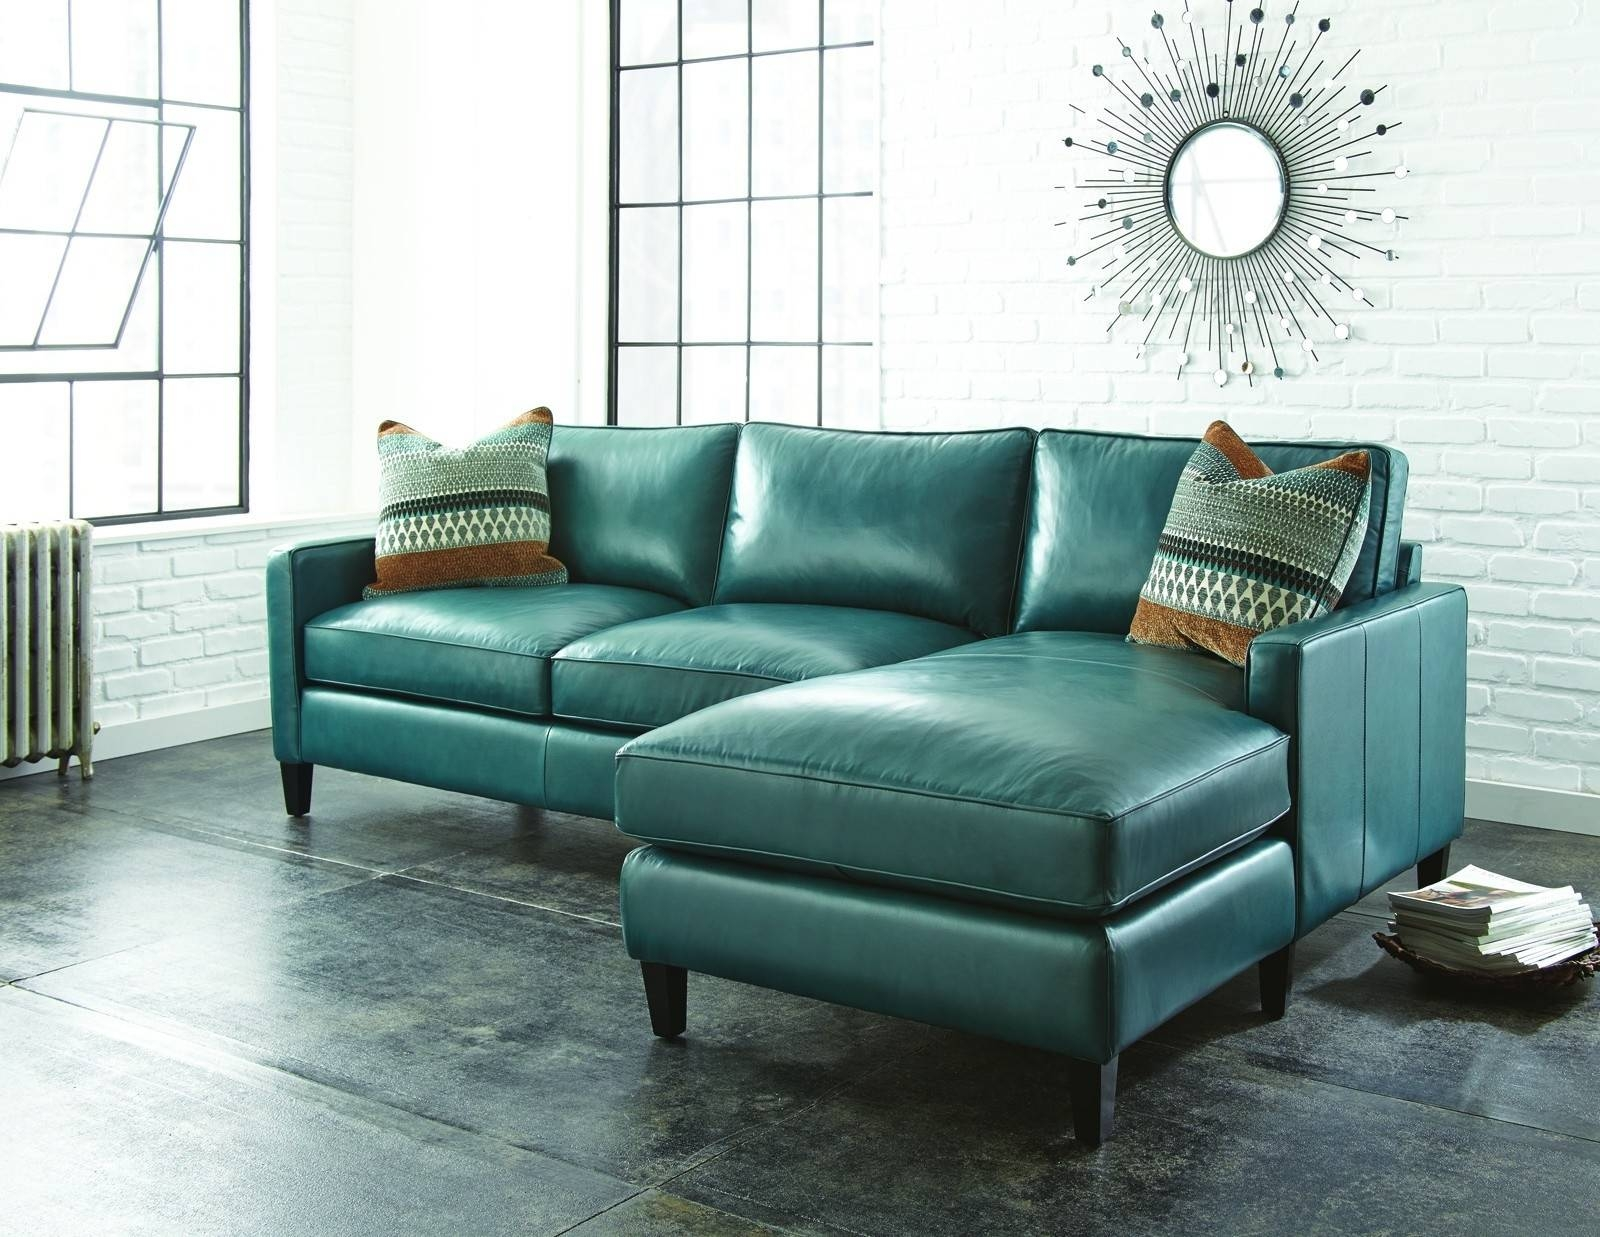 Sofas Center : Excellent Green Sectional Sofa Photos Inspirations within Green Sectional Sofa With Chaise (Image 25 of 30)